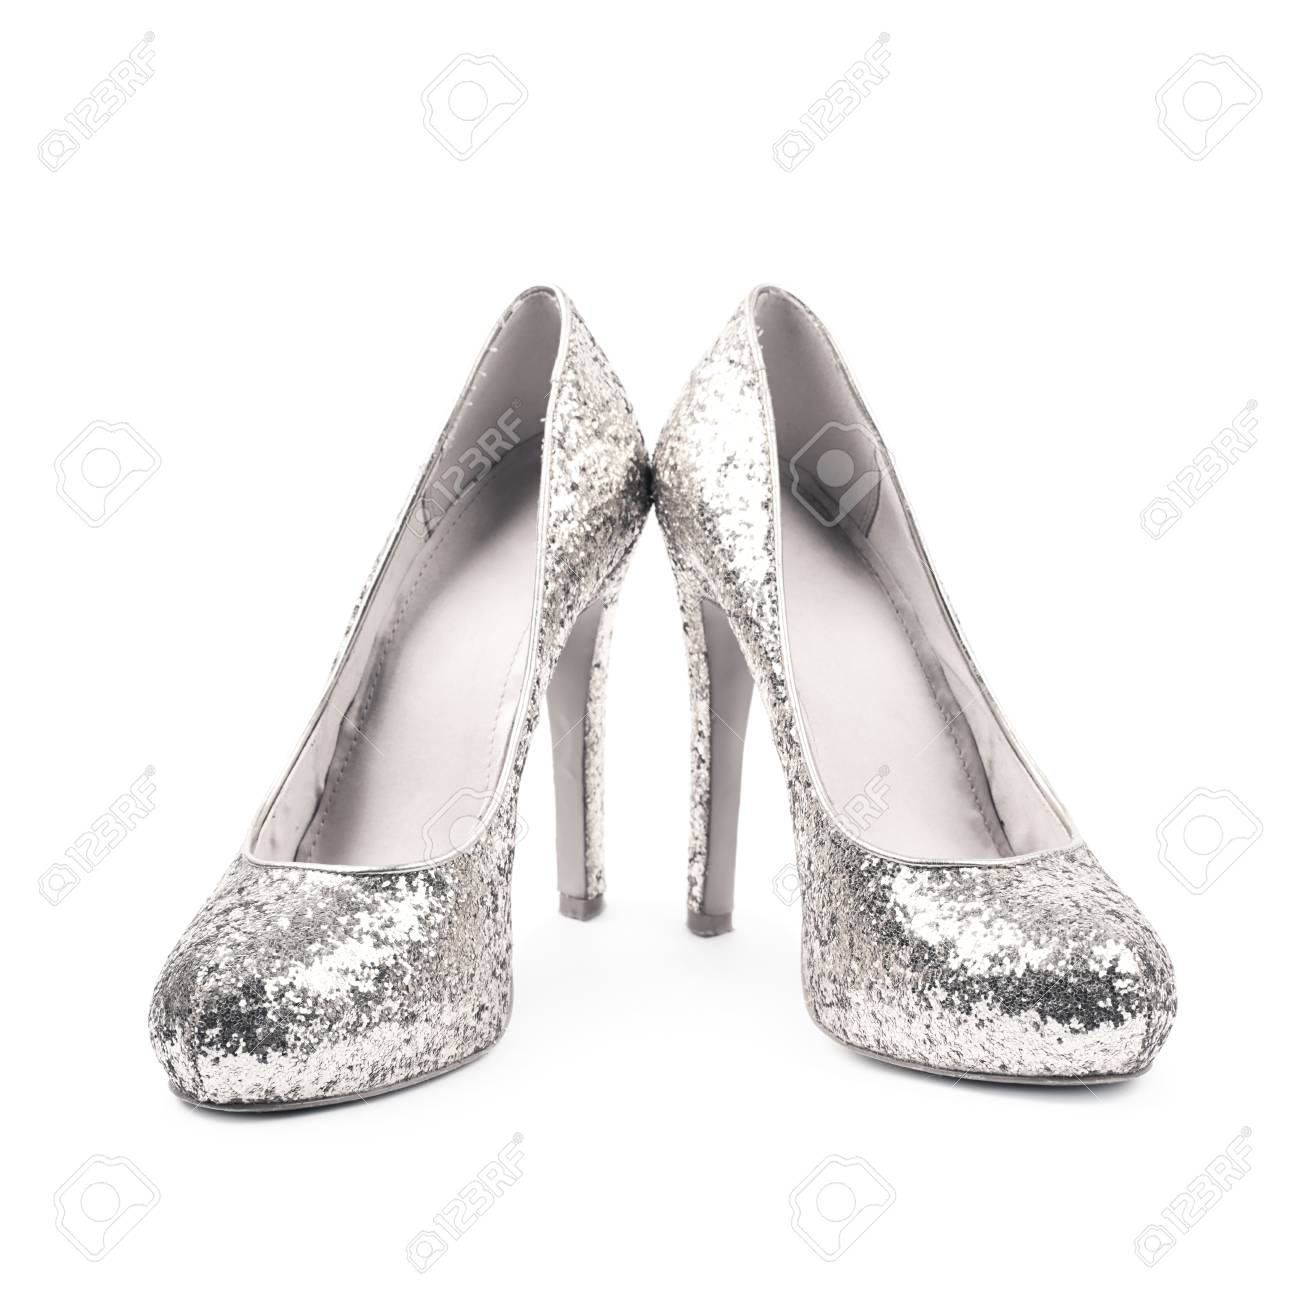 781e9df90fc Pair Of Shining Silver High-heeled Footwear Shoes